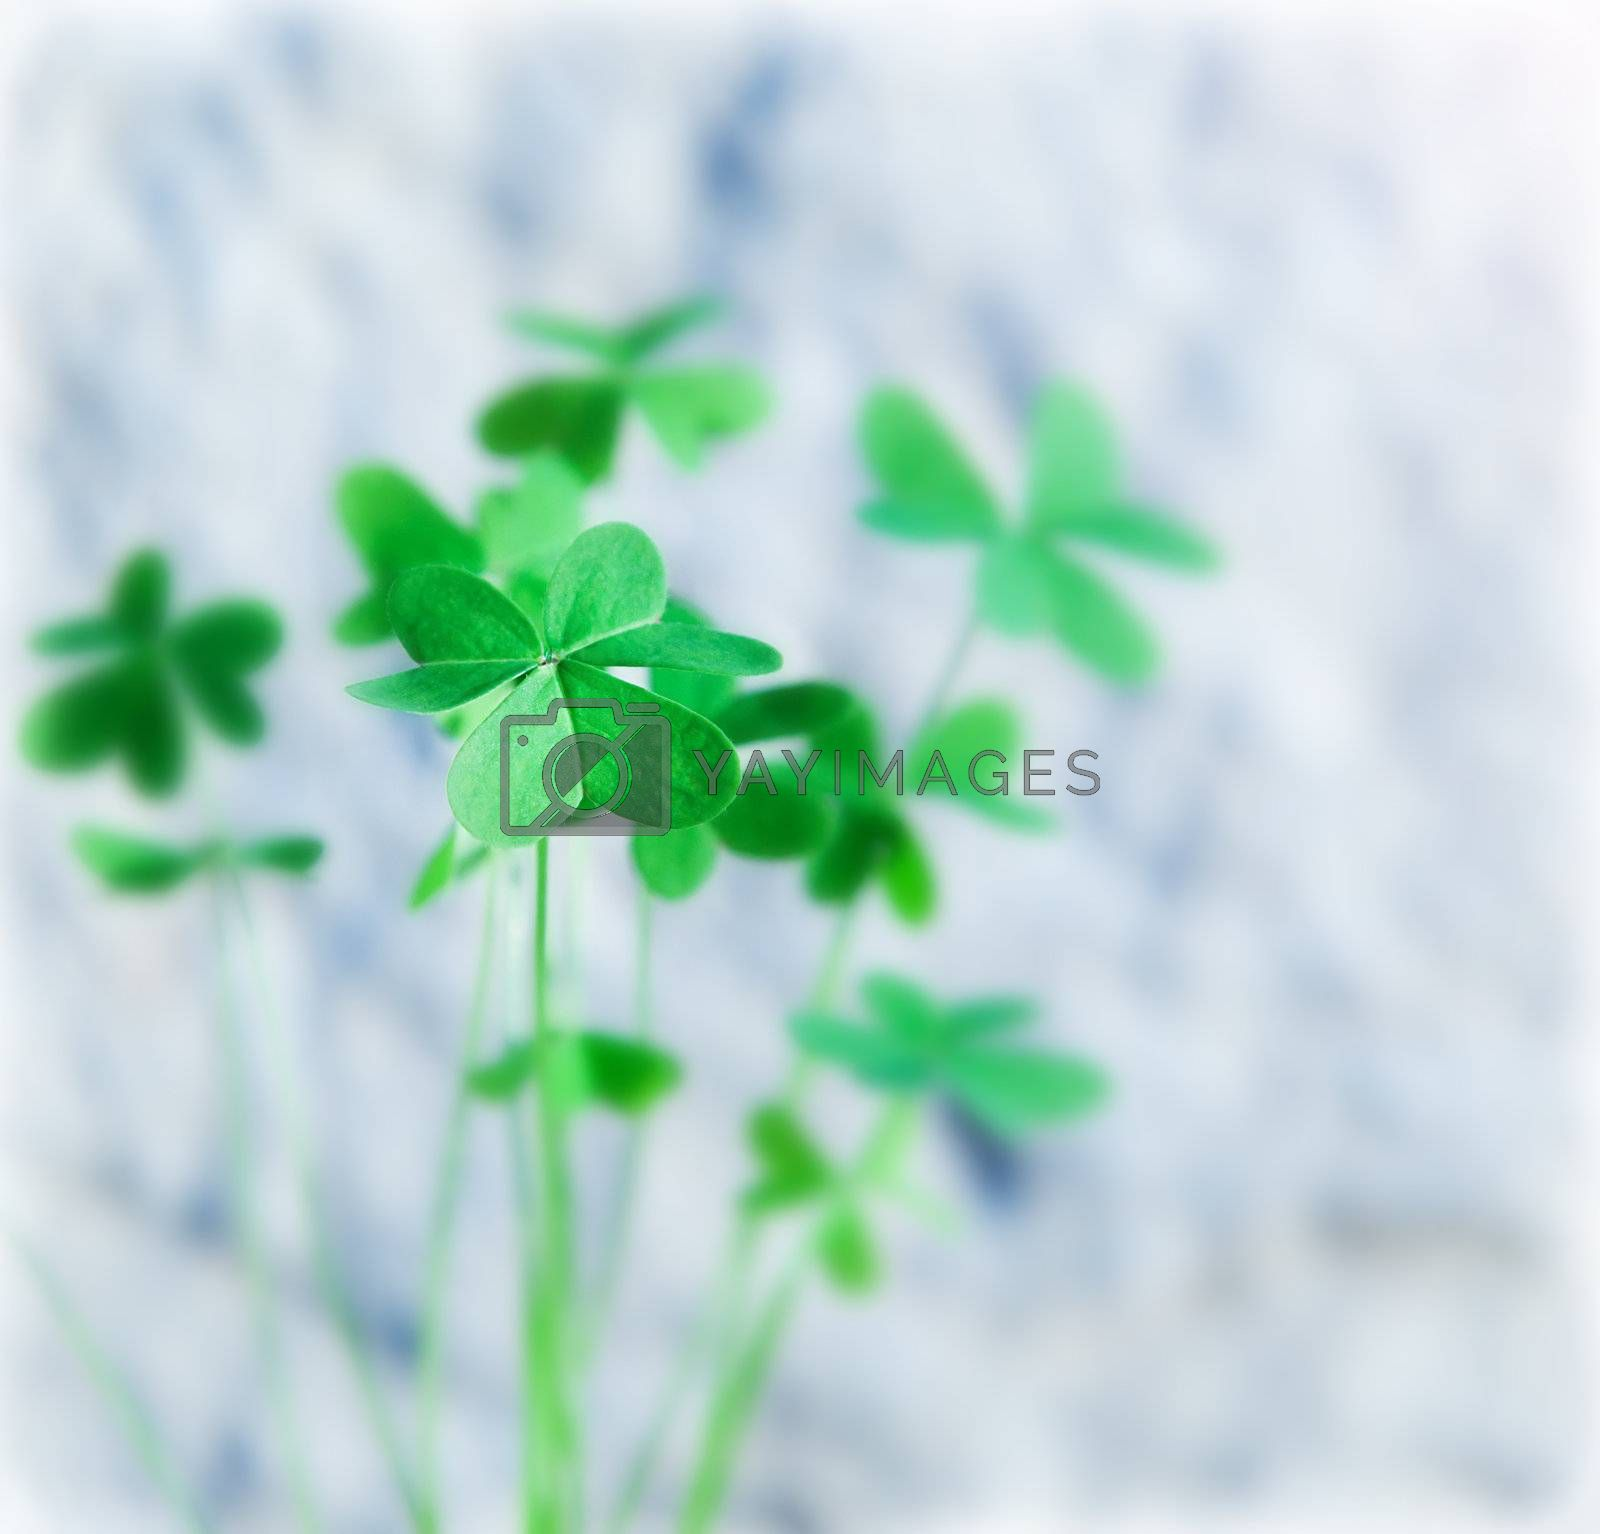 Fresh clover leaves, green spring floral plant, lucky shamrock, St.Patrick's day holiday symbol, abstract natural background, shallow depth